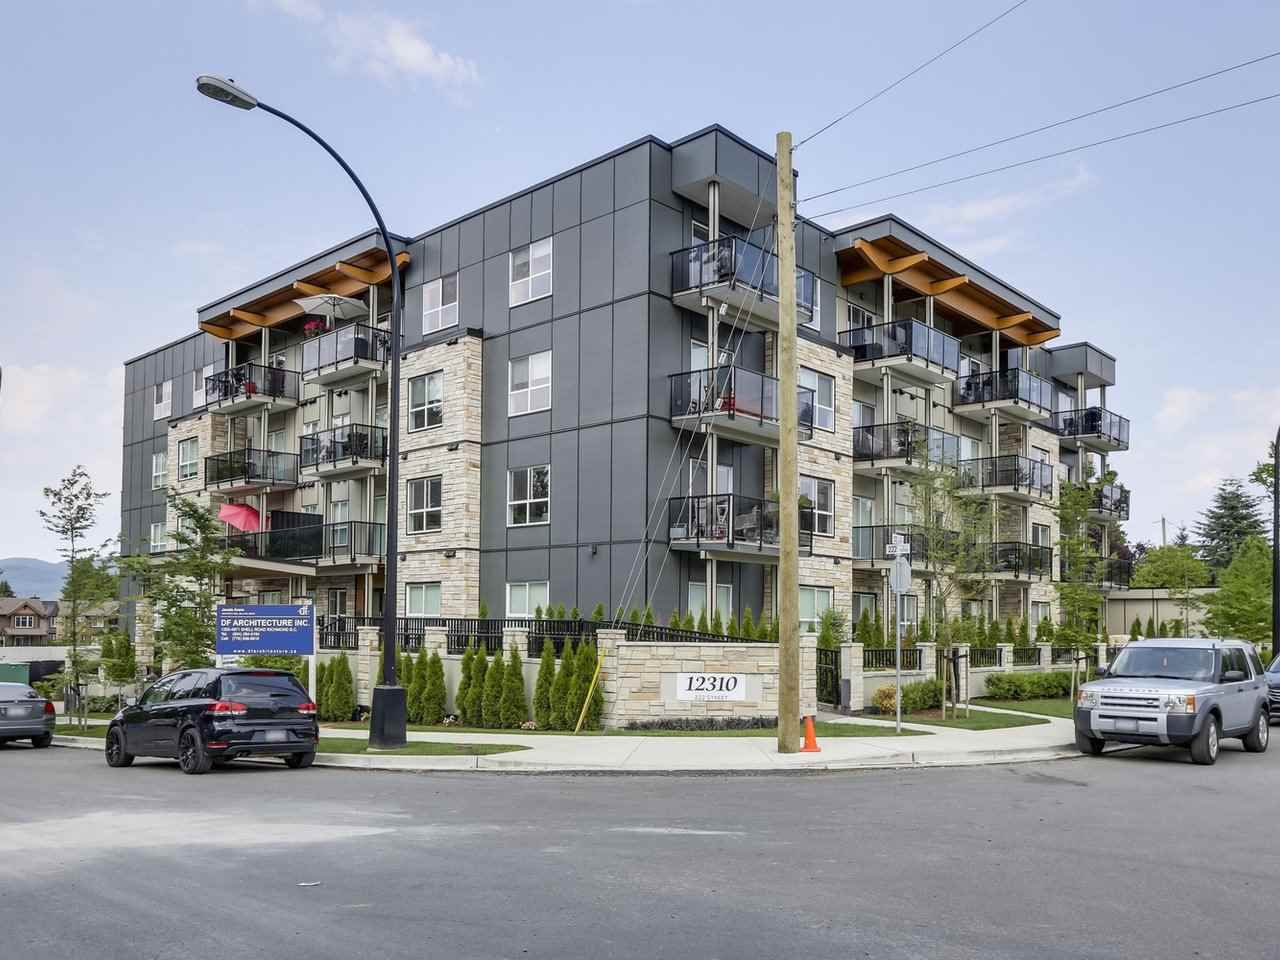 Main Photo: 409 12310 222 STREET in : West Central Condo for sale : MLS®# R2277149